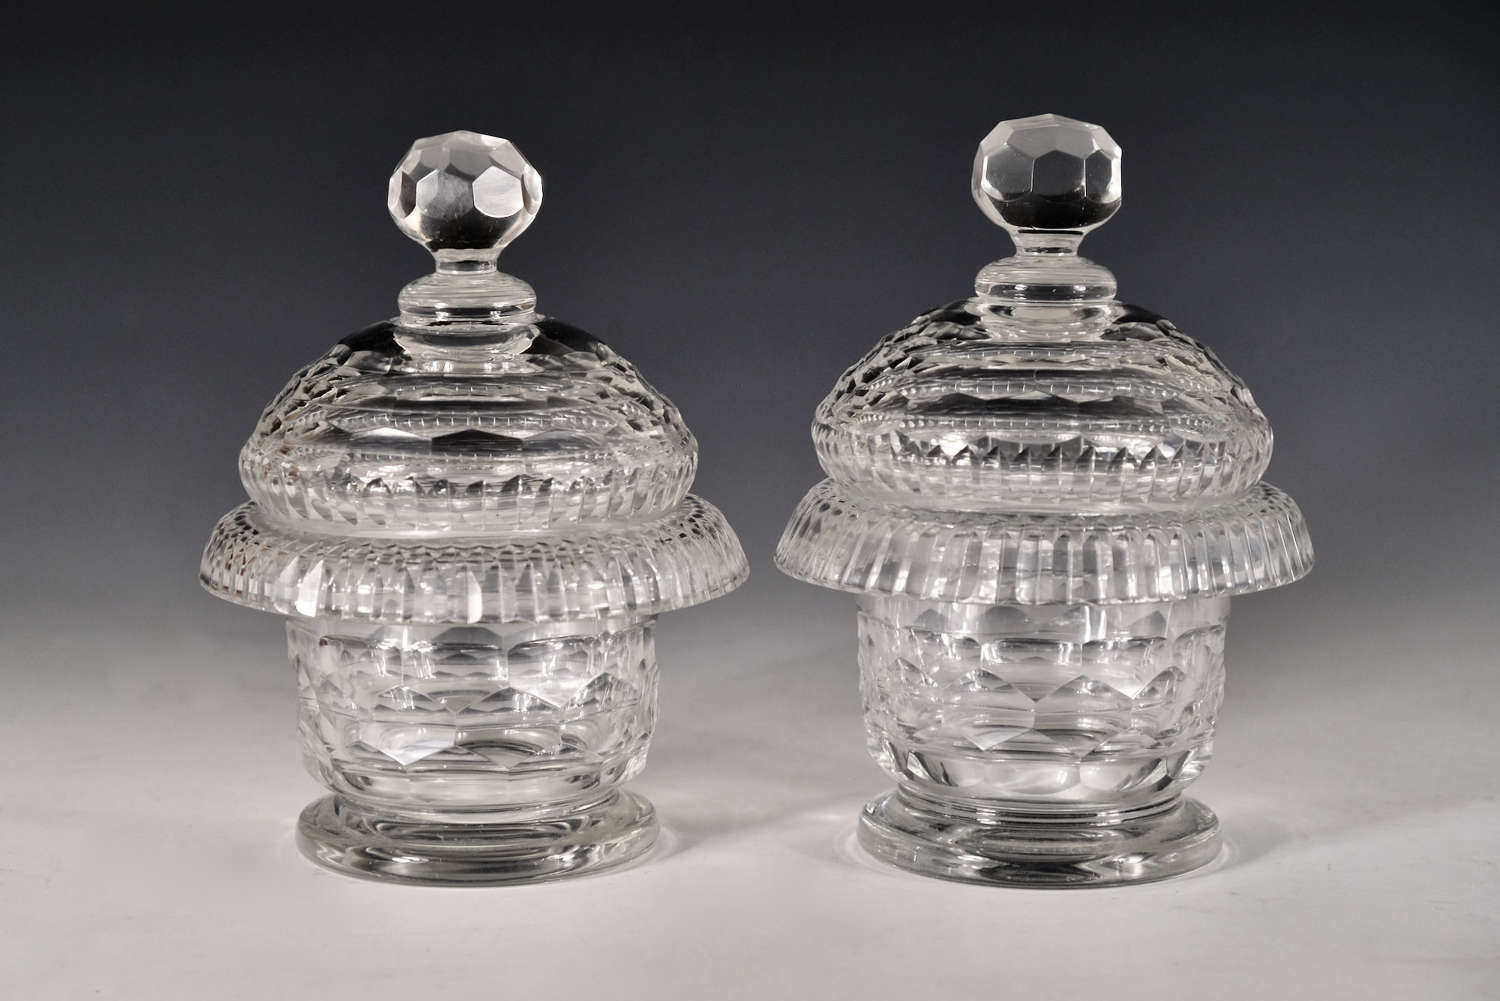 Antique preserve jars pair Irish c1820